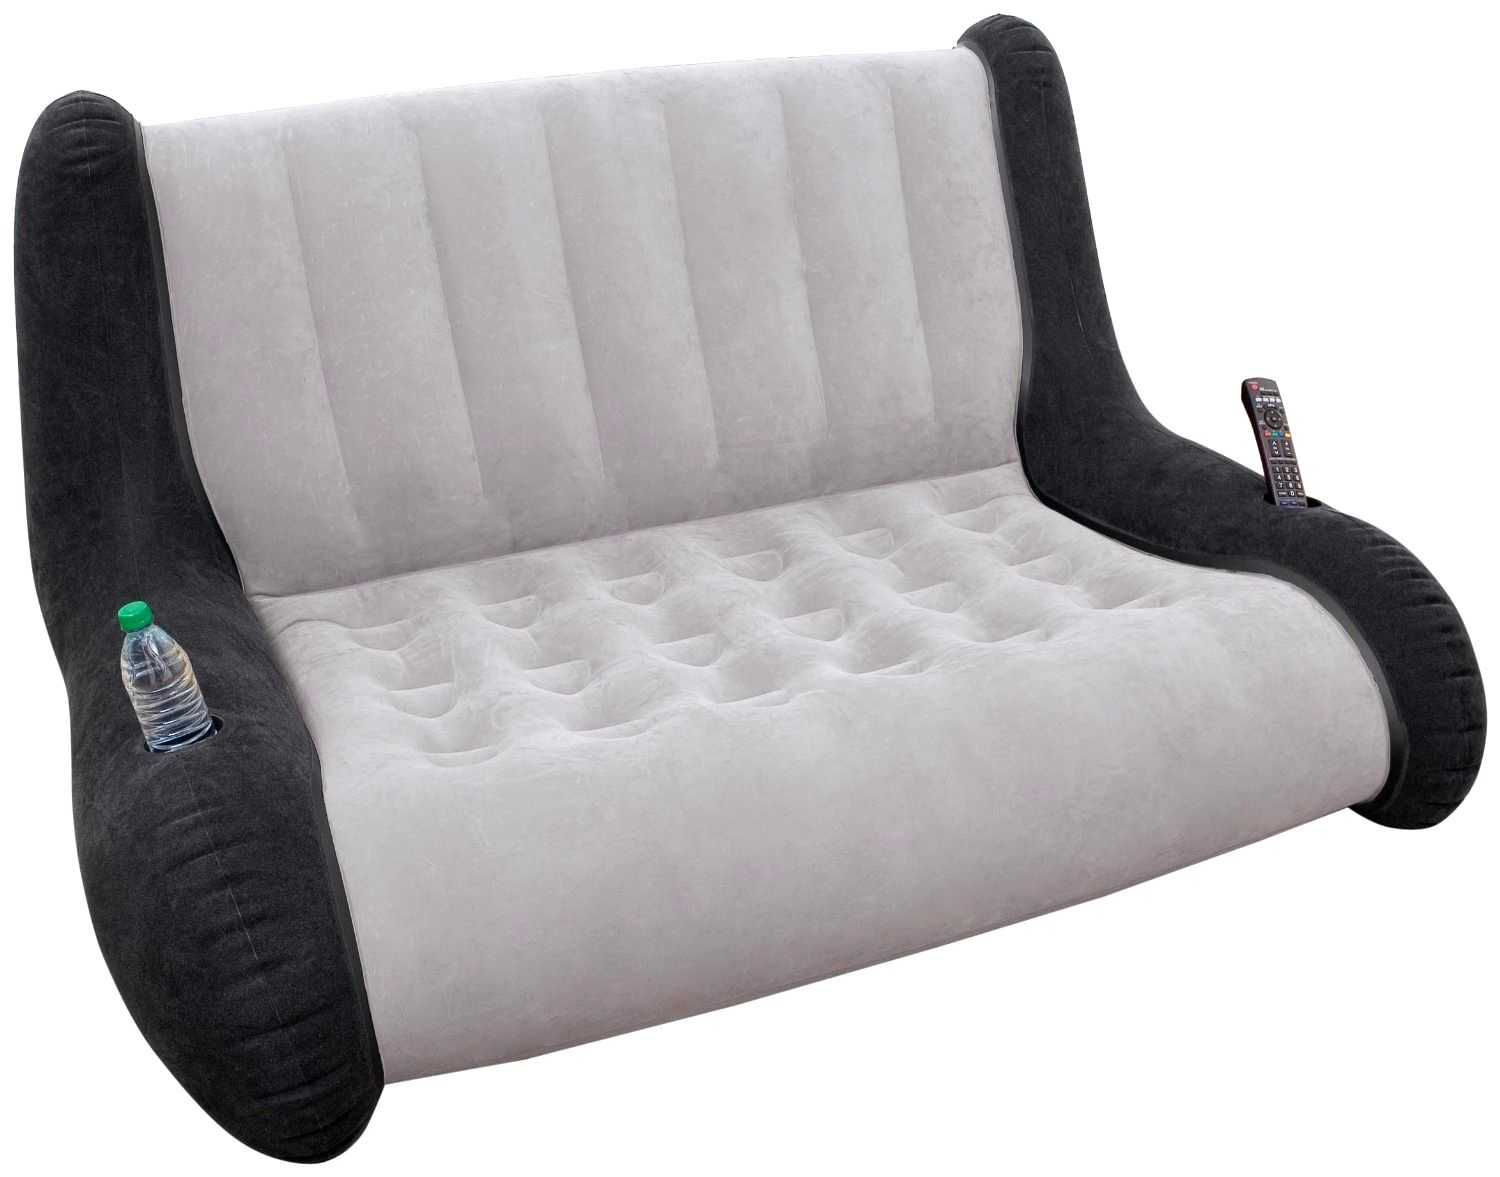 Pin By Selbicconsult On Sofa Furniture Sofa Lounge Sofa Couch